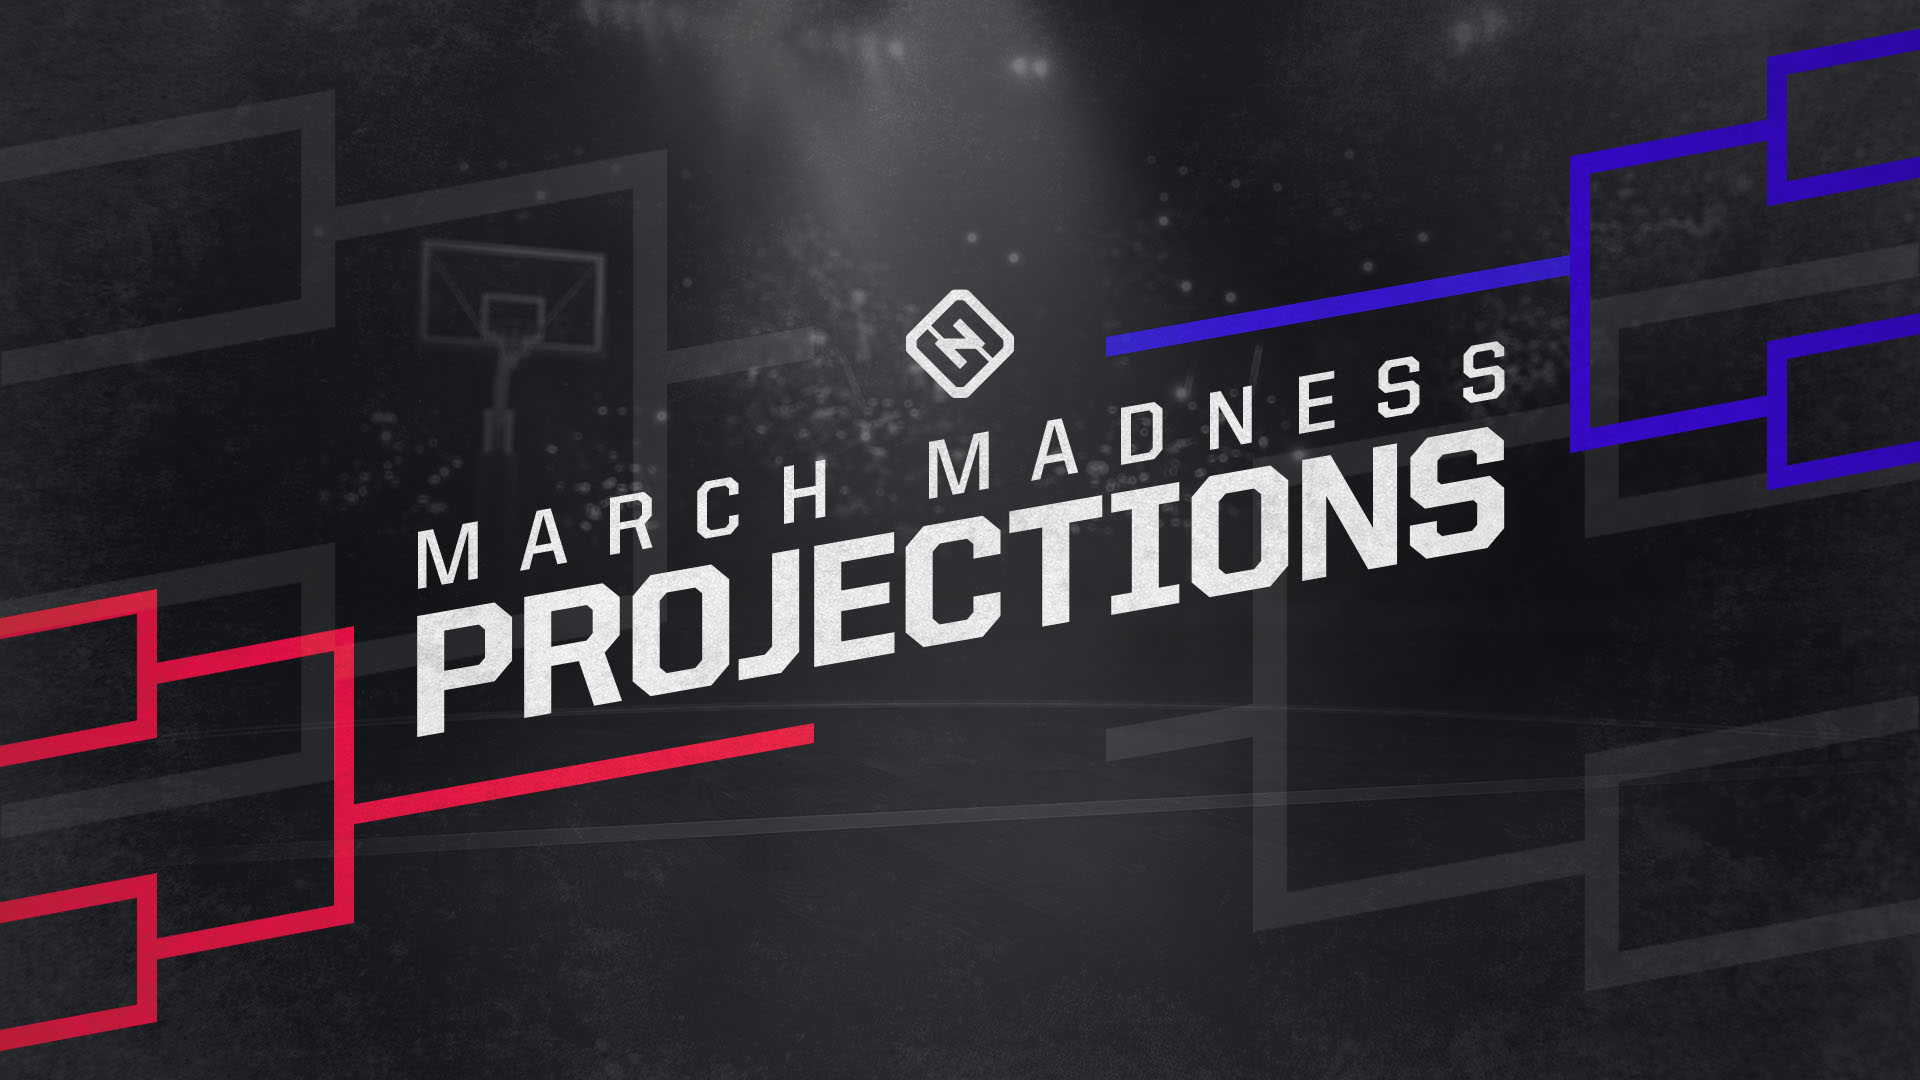 March Madness bracket predictions 5.0: Projecting the Field of 68 for 2021 NCAA Tournament